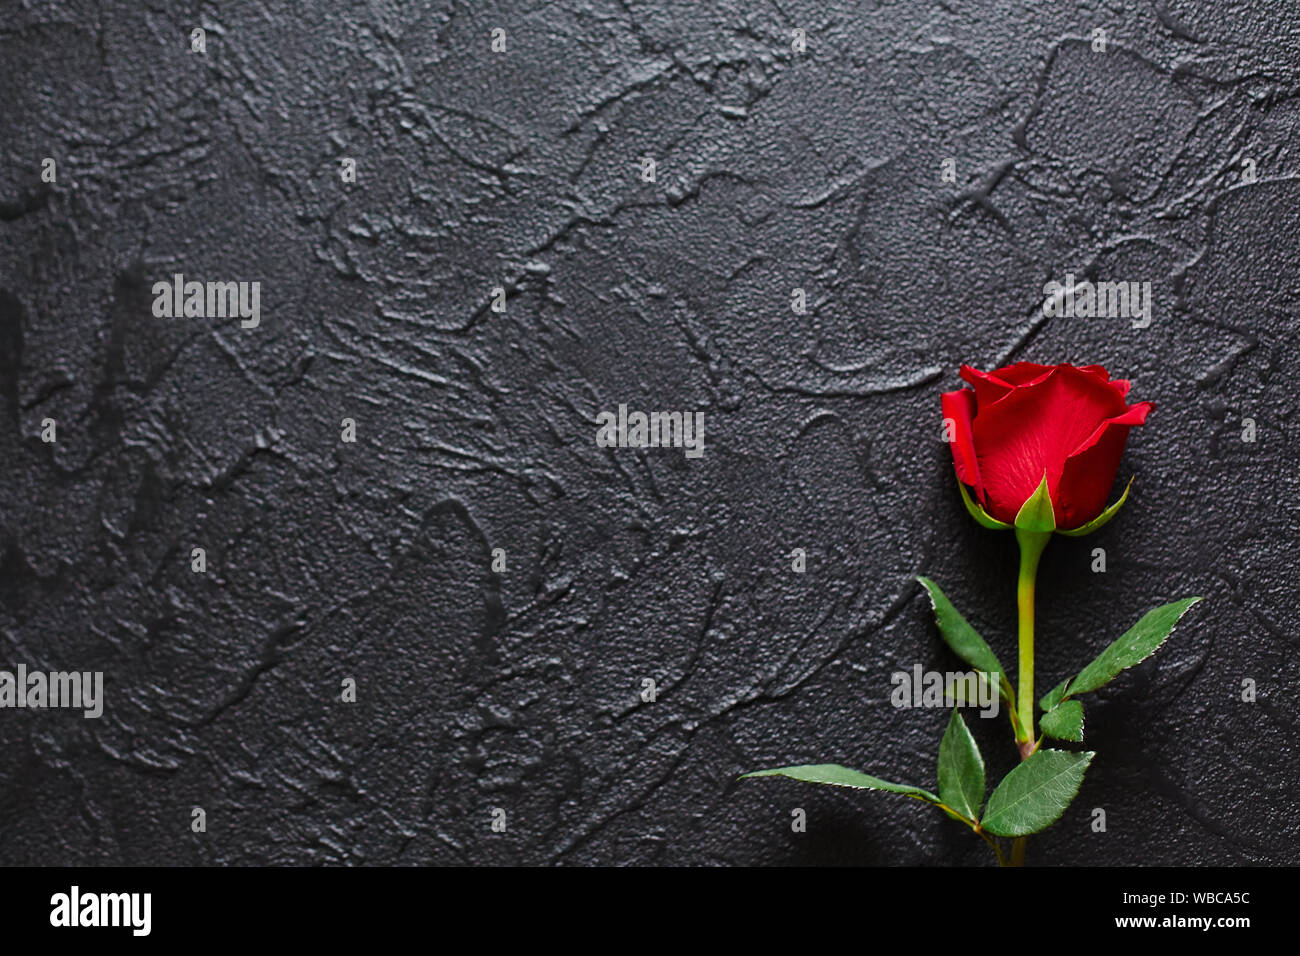 Red rose on a black background, stone. A condolence card. Empty